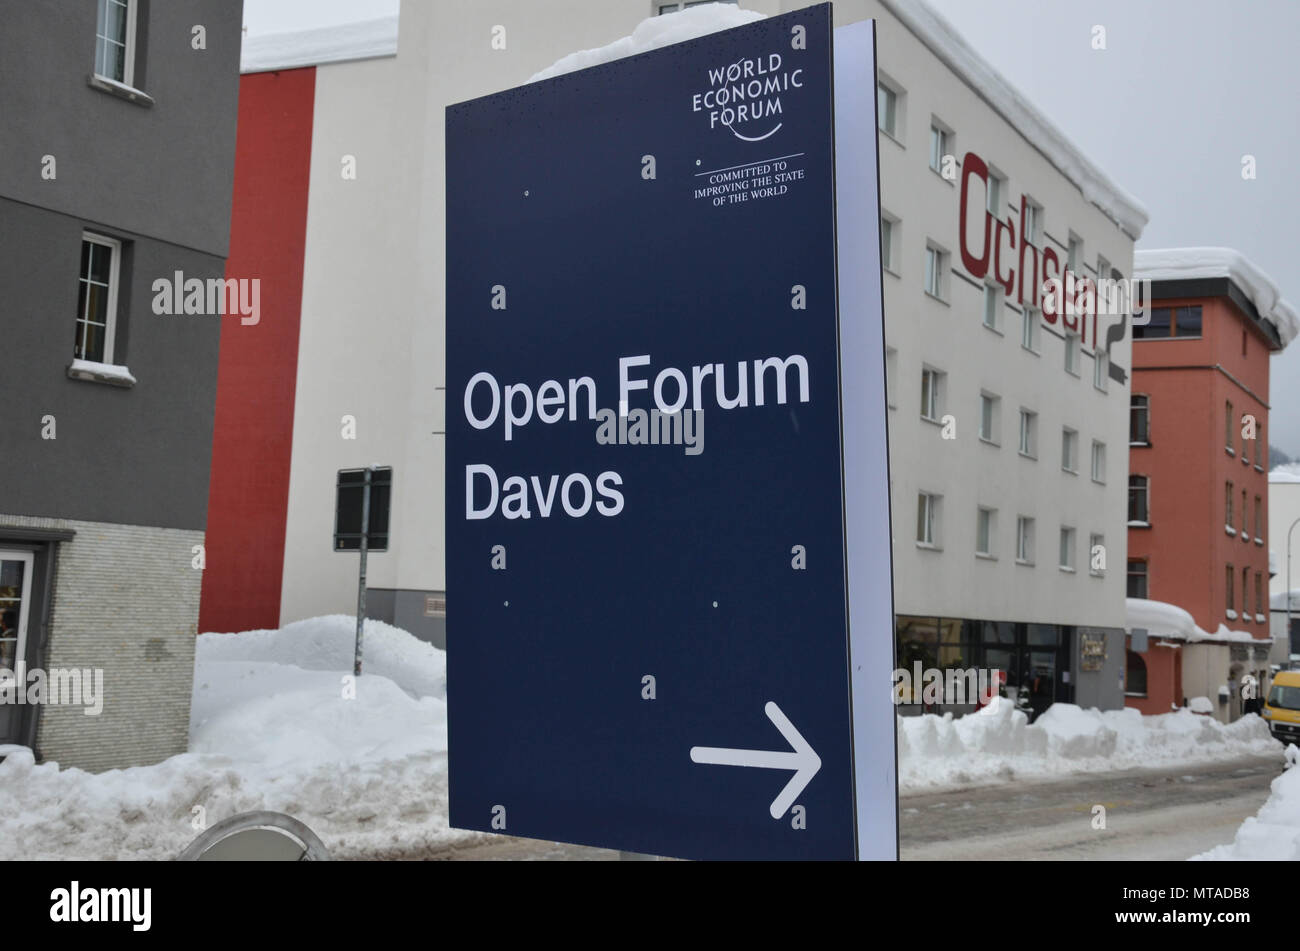 Open Forum sign, Davos, host town of the World Economic Forum, Switzerland, January 2018 - Stock Image